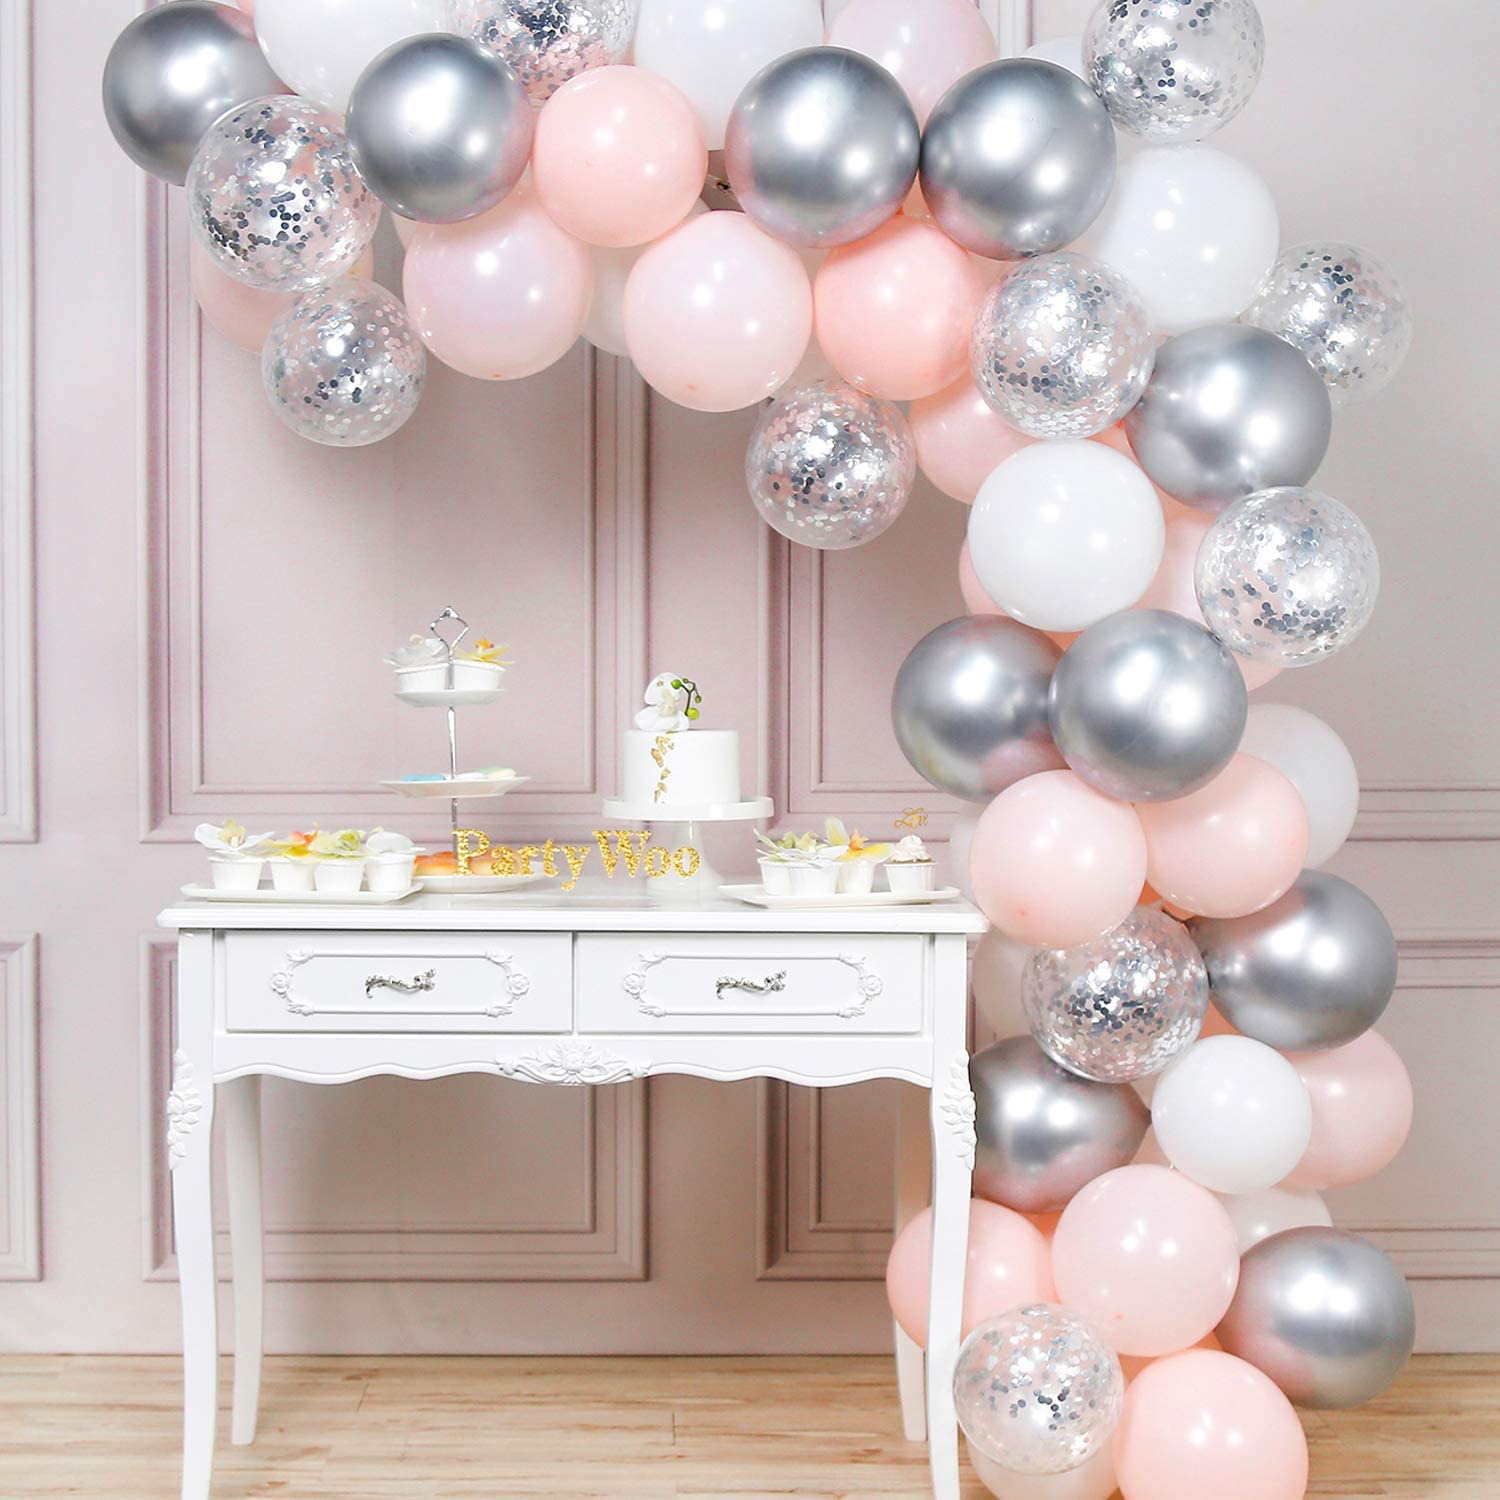 PartyWoo Pink Balloons, Pink Silver and White Balloons Pack of Pale Pink Latex Balloons, White Balloons, Metallic Balloons, Confetti Balloons for Pink Silver Birthday, Pink and Silver Wedding Party